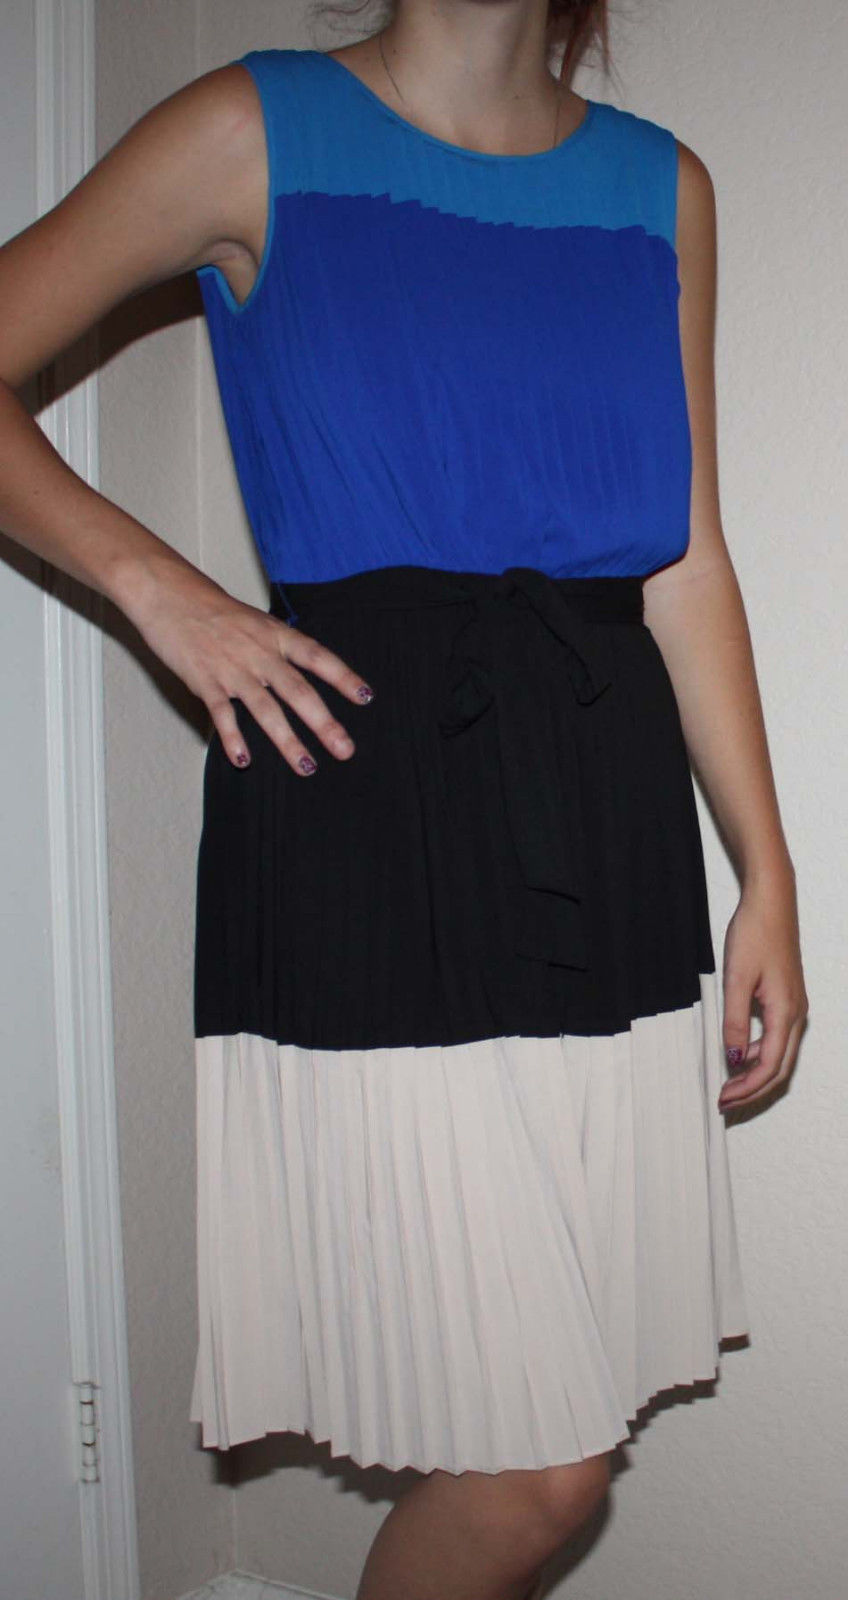 Calvin Klein Women's Blues, Black & Beige Pleated Belted Dress Sz 2